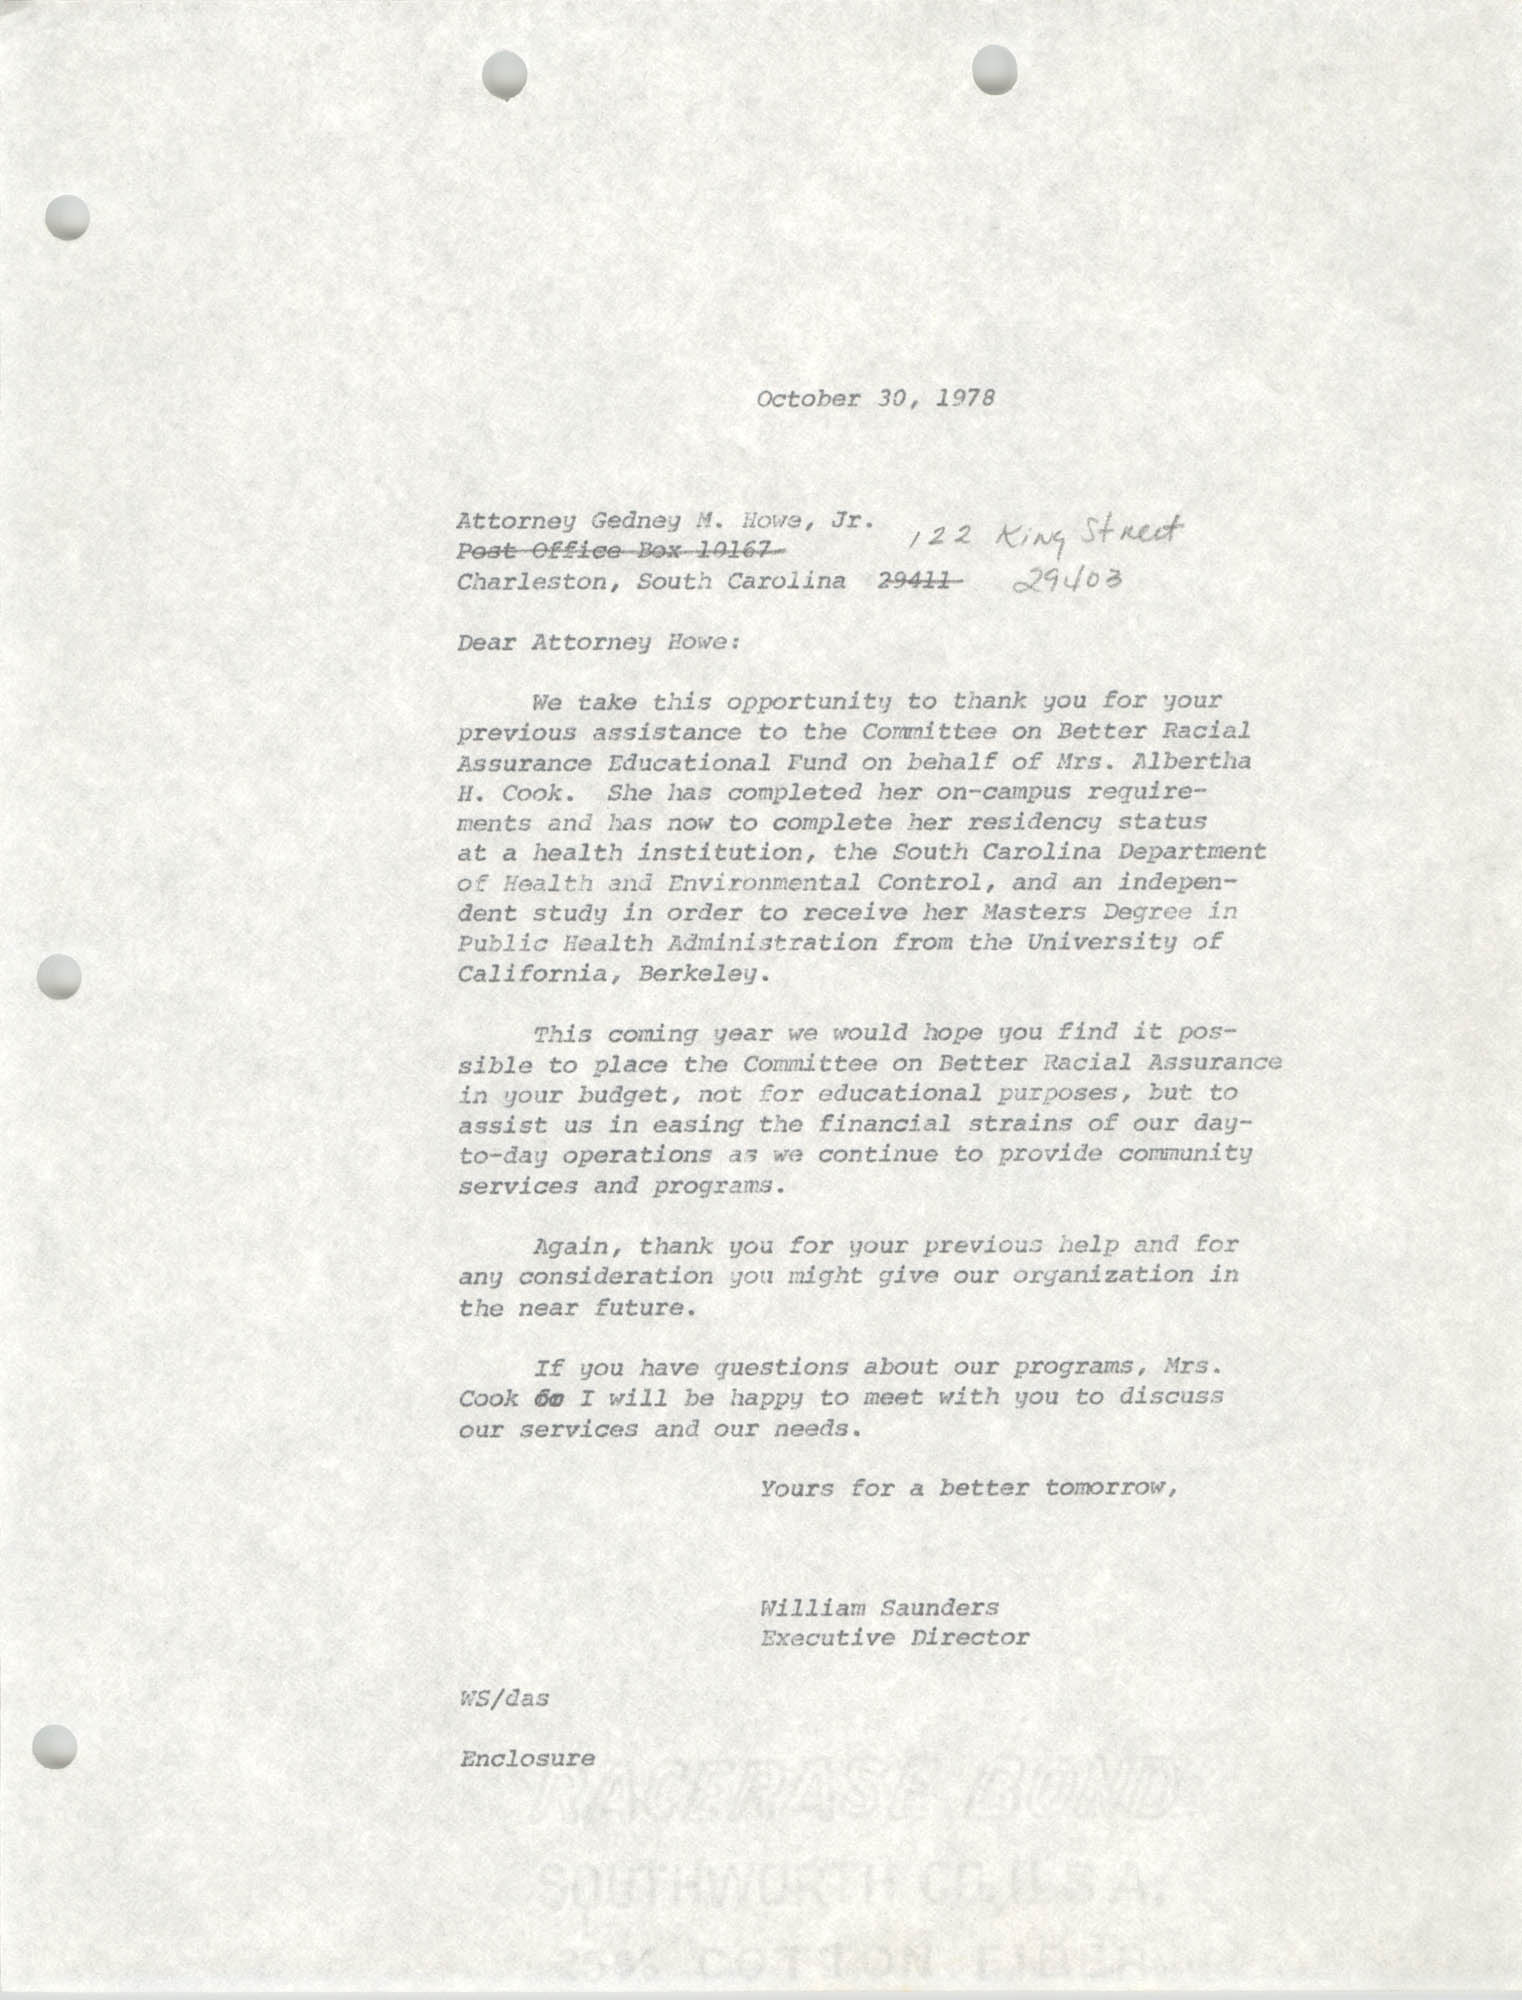 Letter from William Saunders to Gedney M. Howe, Jr., October 30, 1978